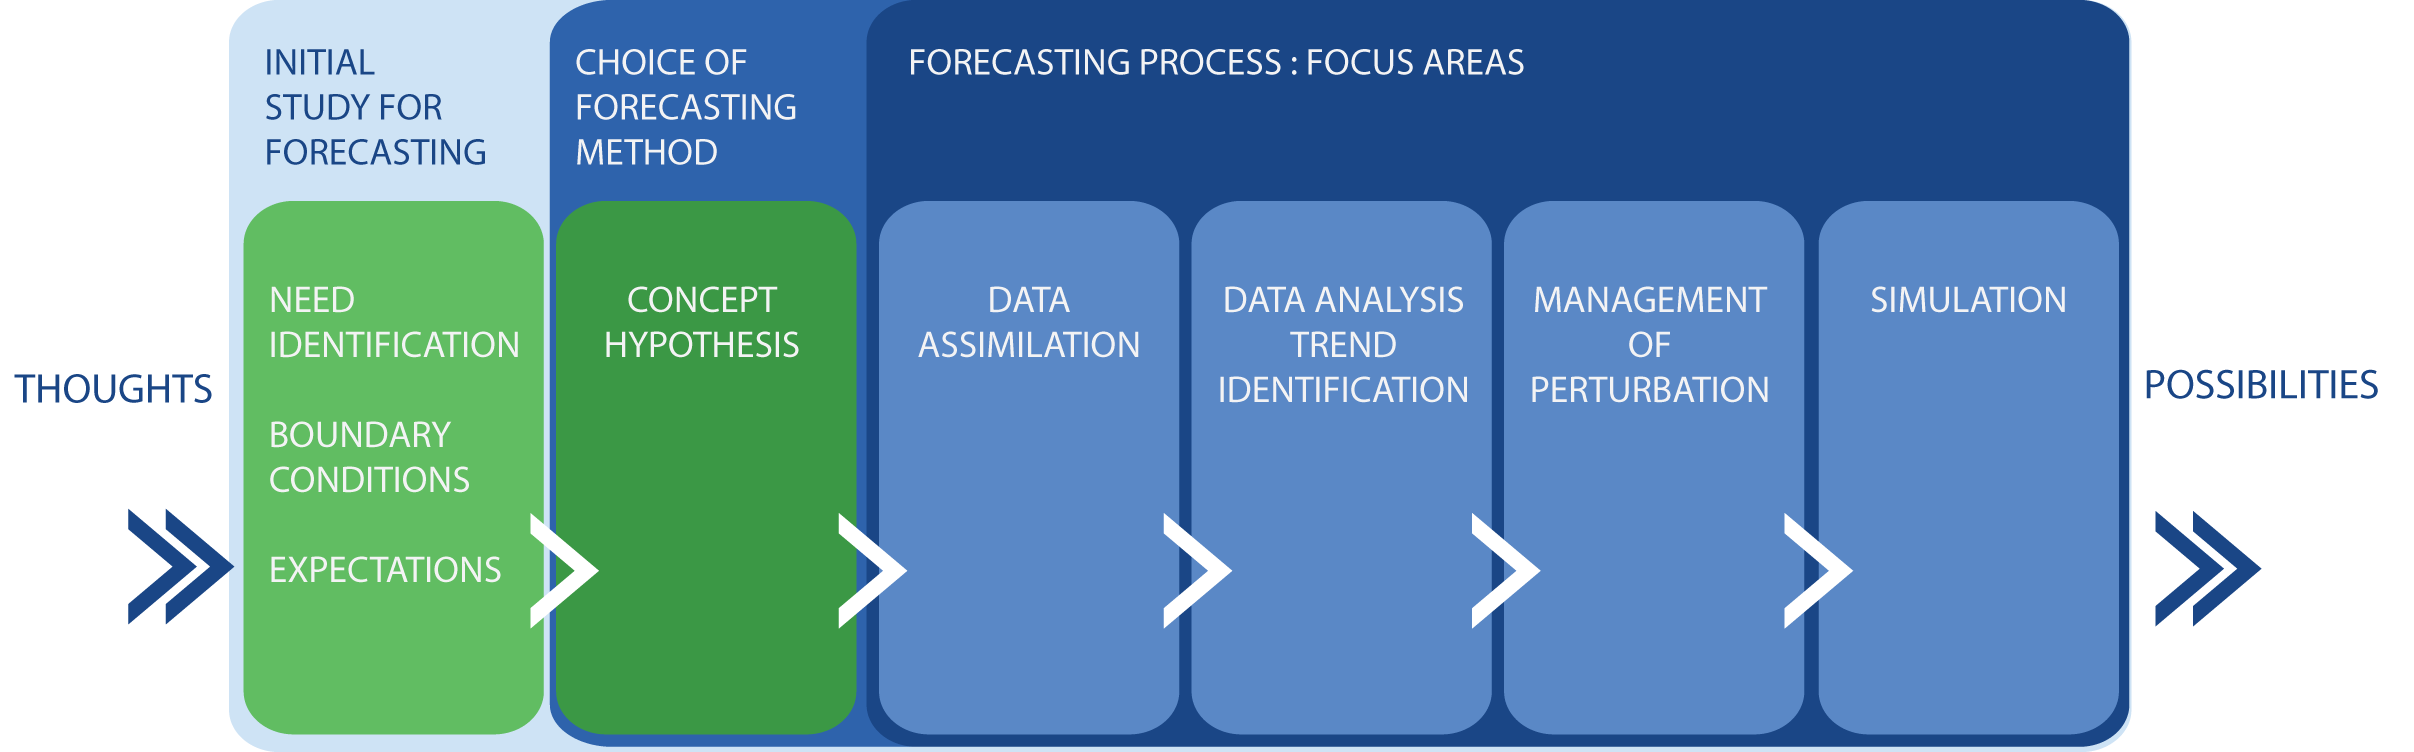 Classification of forecasting methods with respect to their